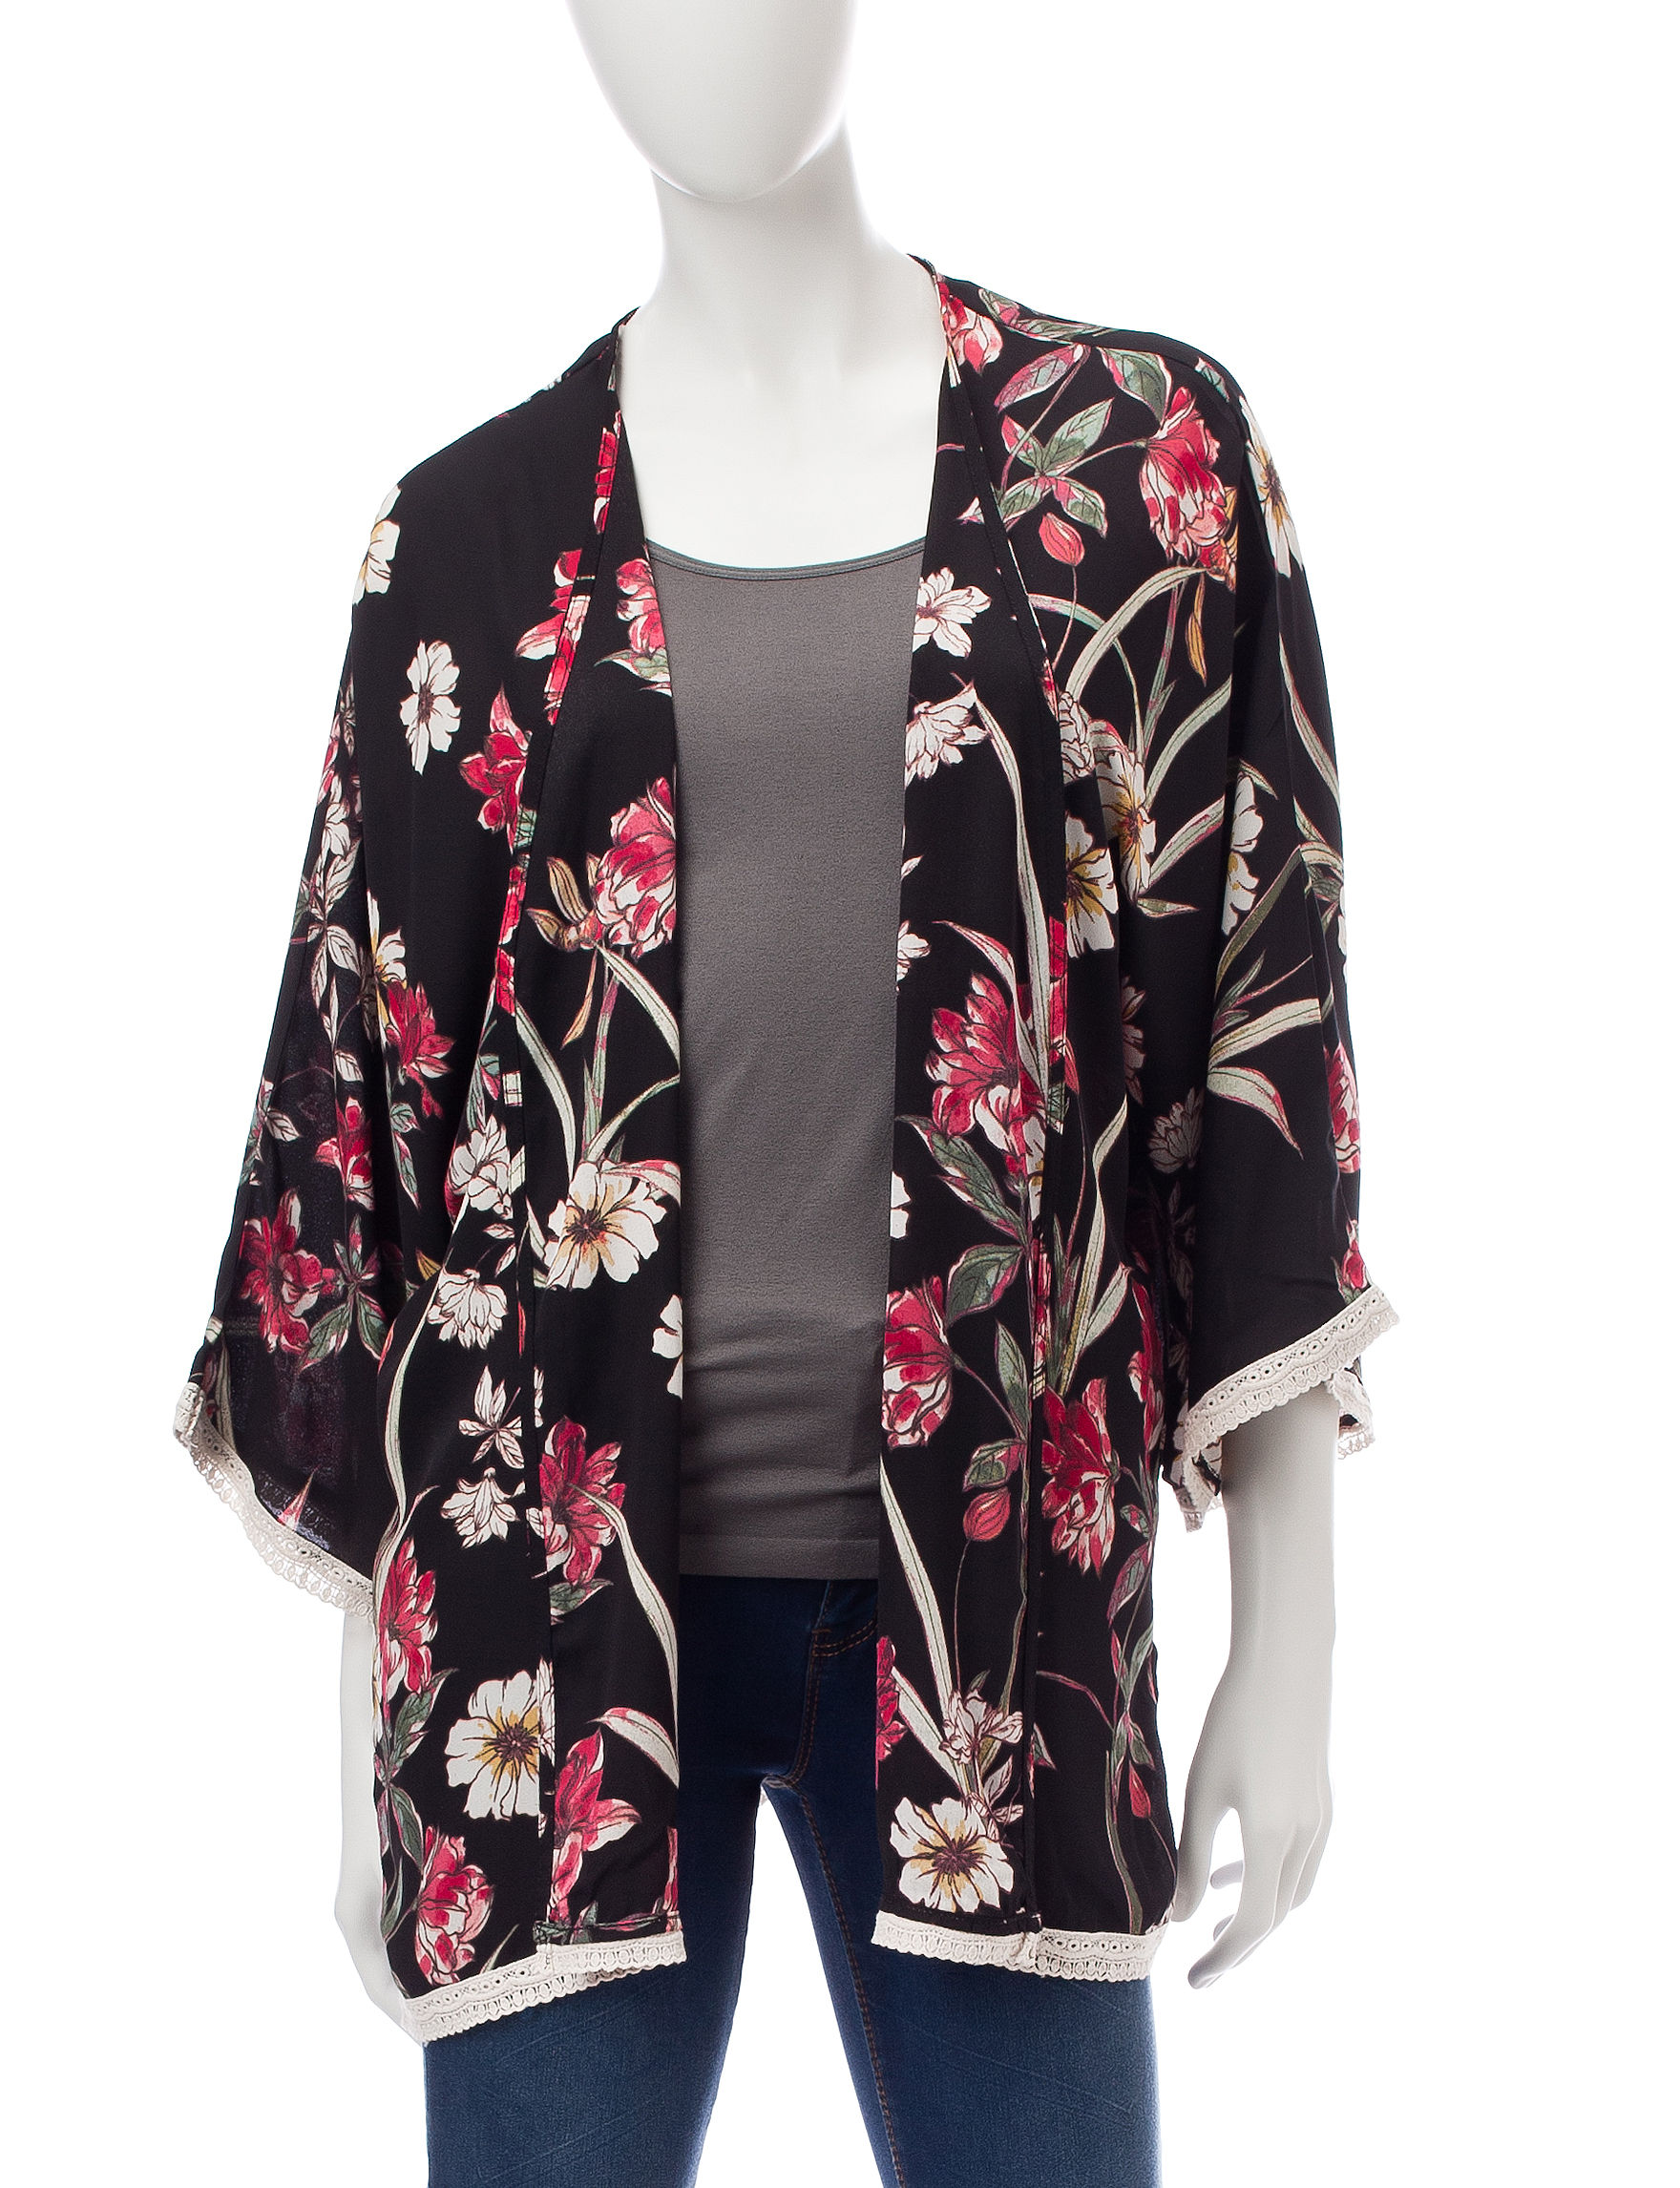 Wishful Park Black Floral Kimonos